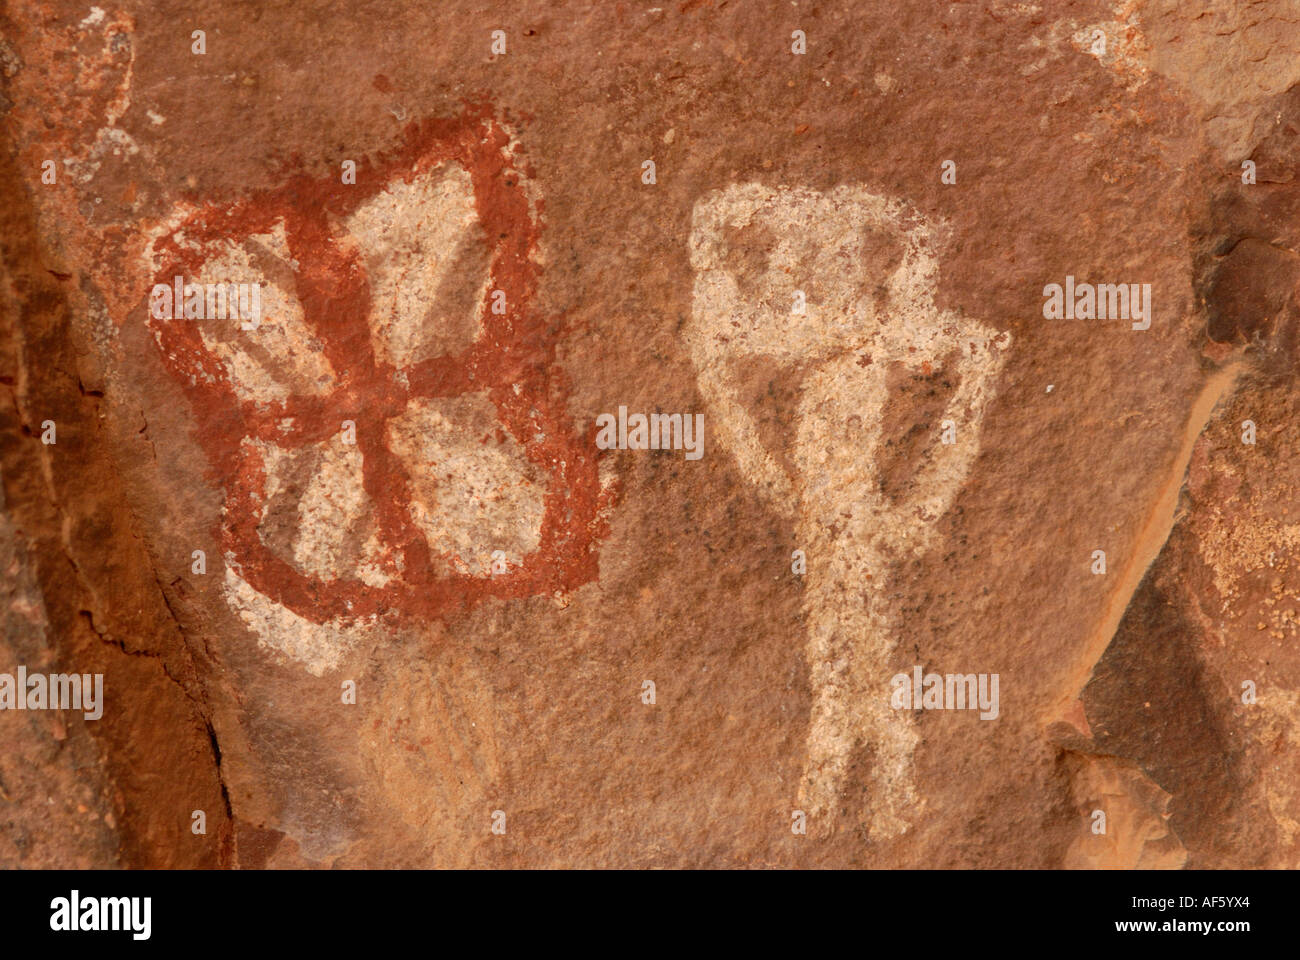 Native American tribue Sinagua pictogrammes des symboles spirituels, Palatki falaises rouges, Arizona Photo Stock